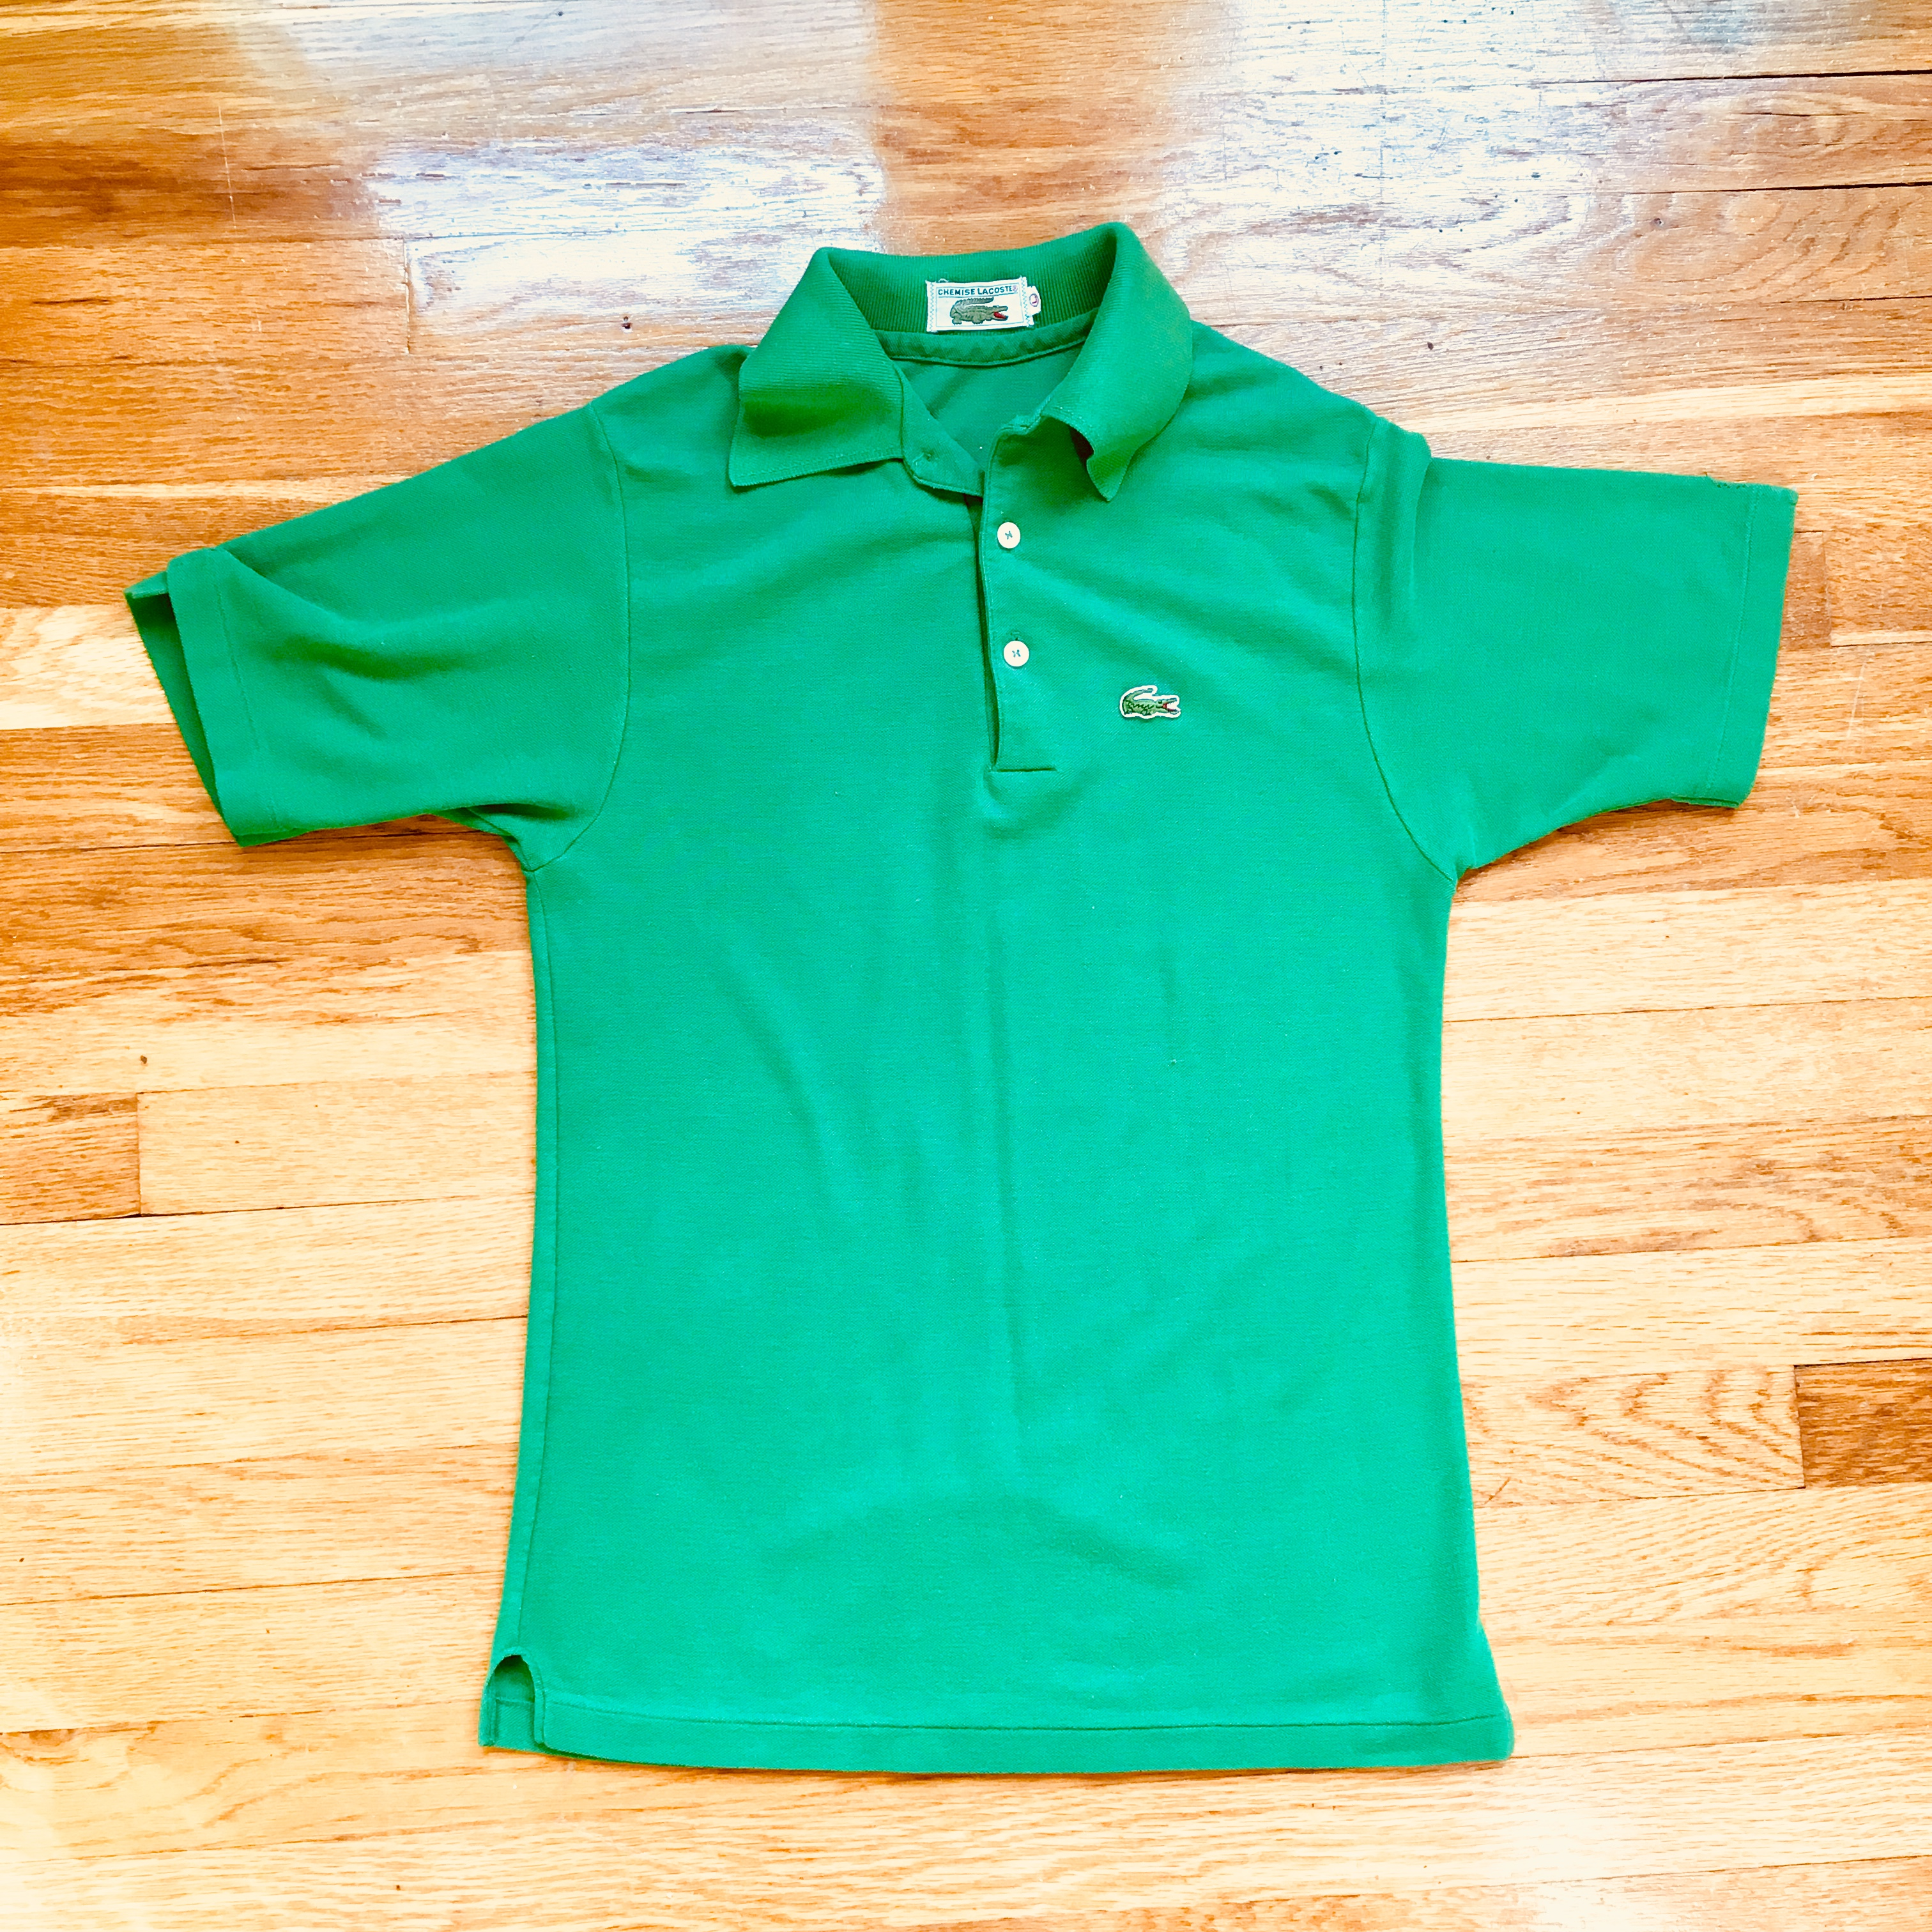 dedfc98b96255 Vintage Chemise Lacoste Green Polo Size l - Polos for Sale - Grailed